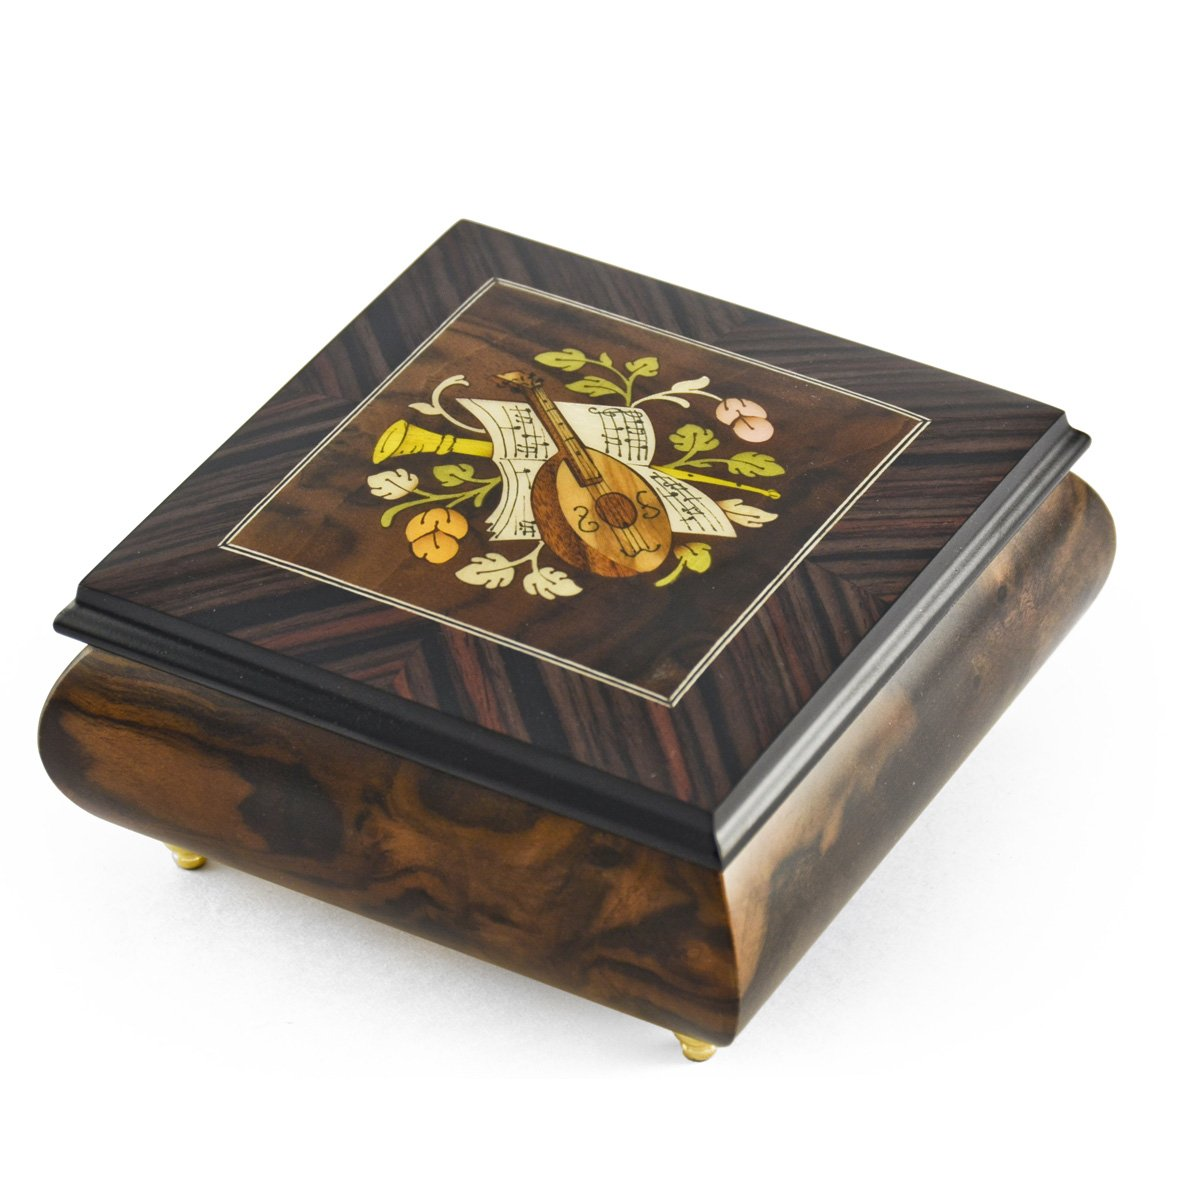 Hand-made 18 Note Italian Jewelry Box with Mandolin Wood Inlay - Rock of Ages - Christian Version by MusicBoxAttic